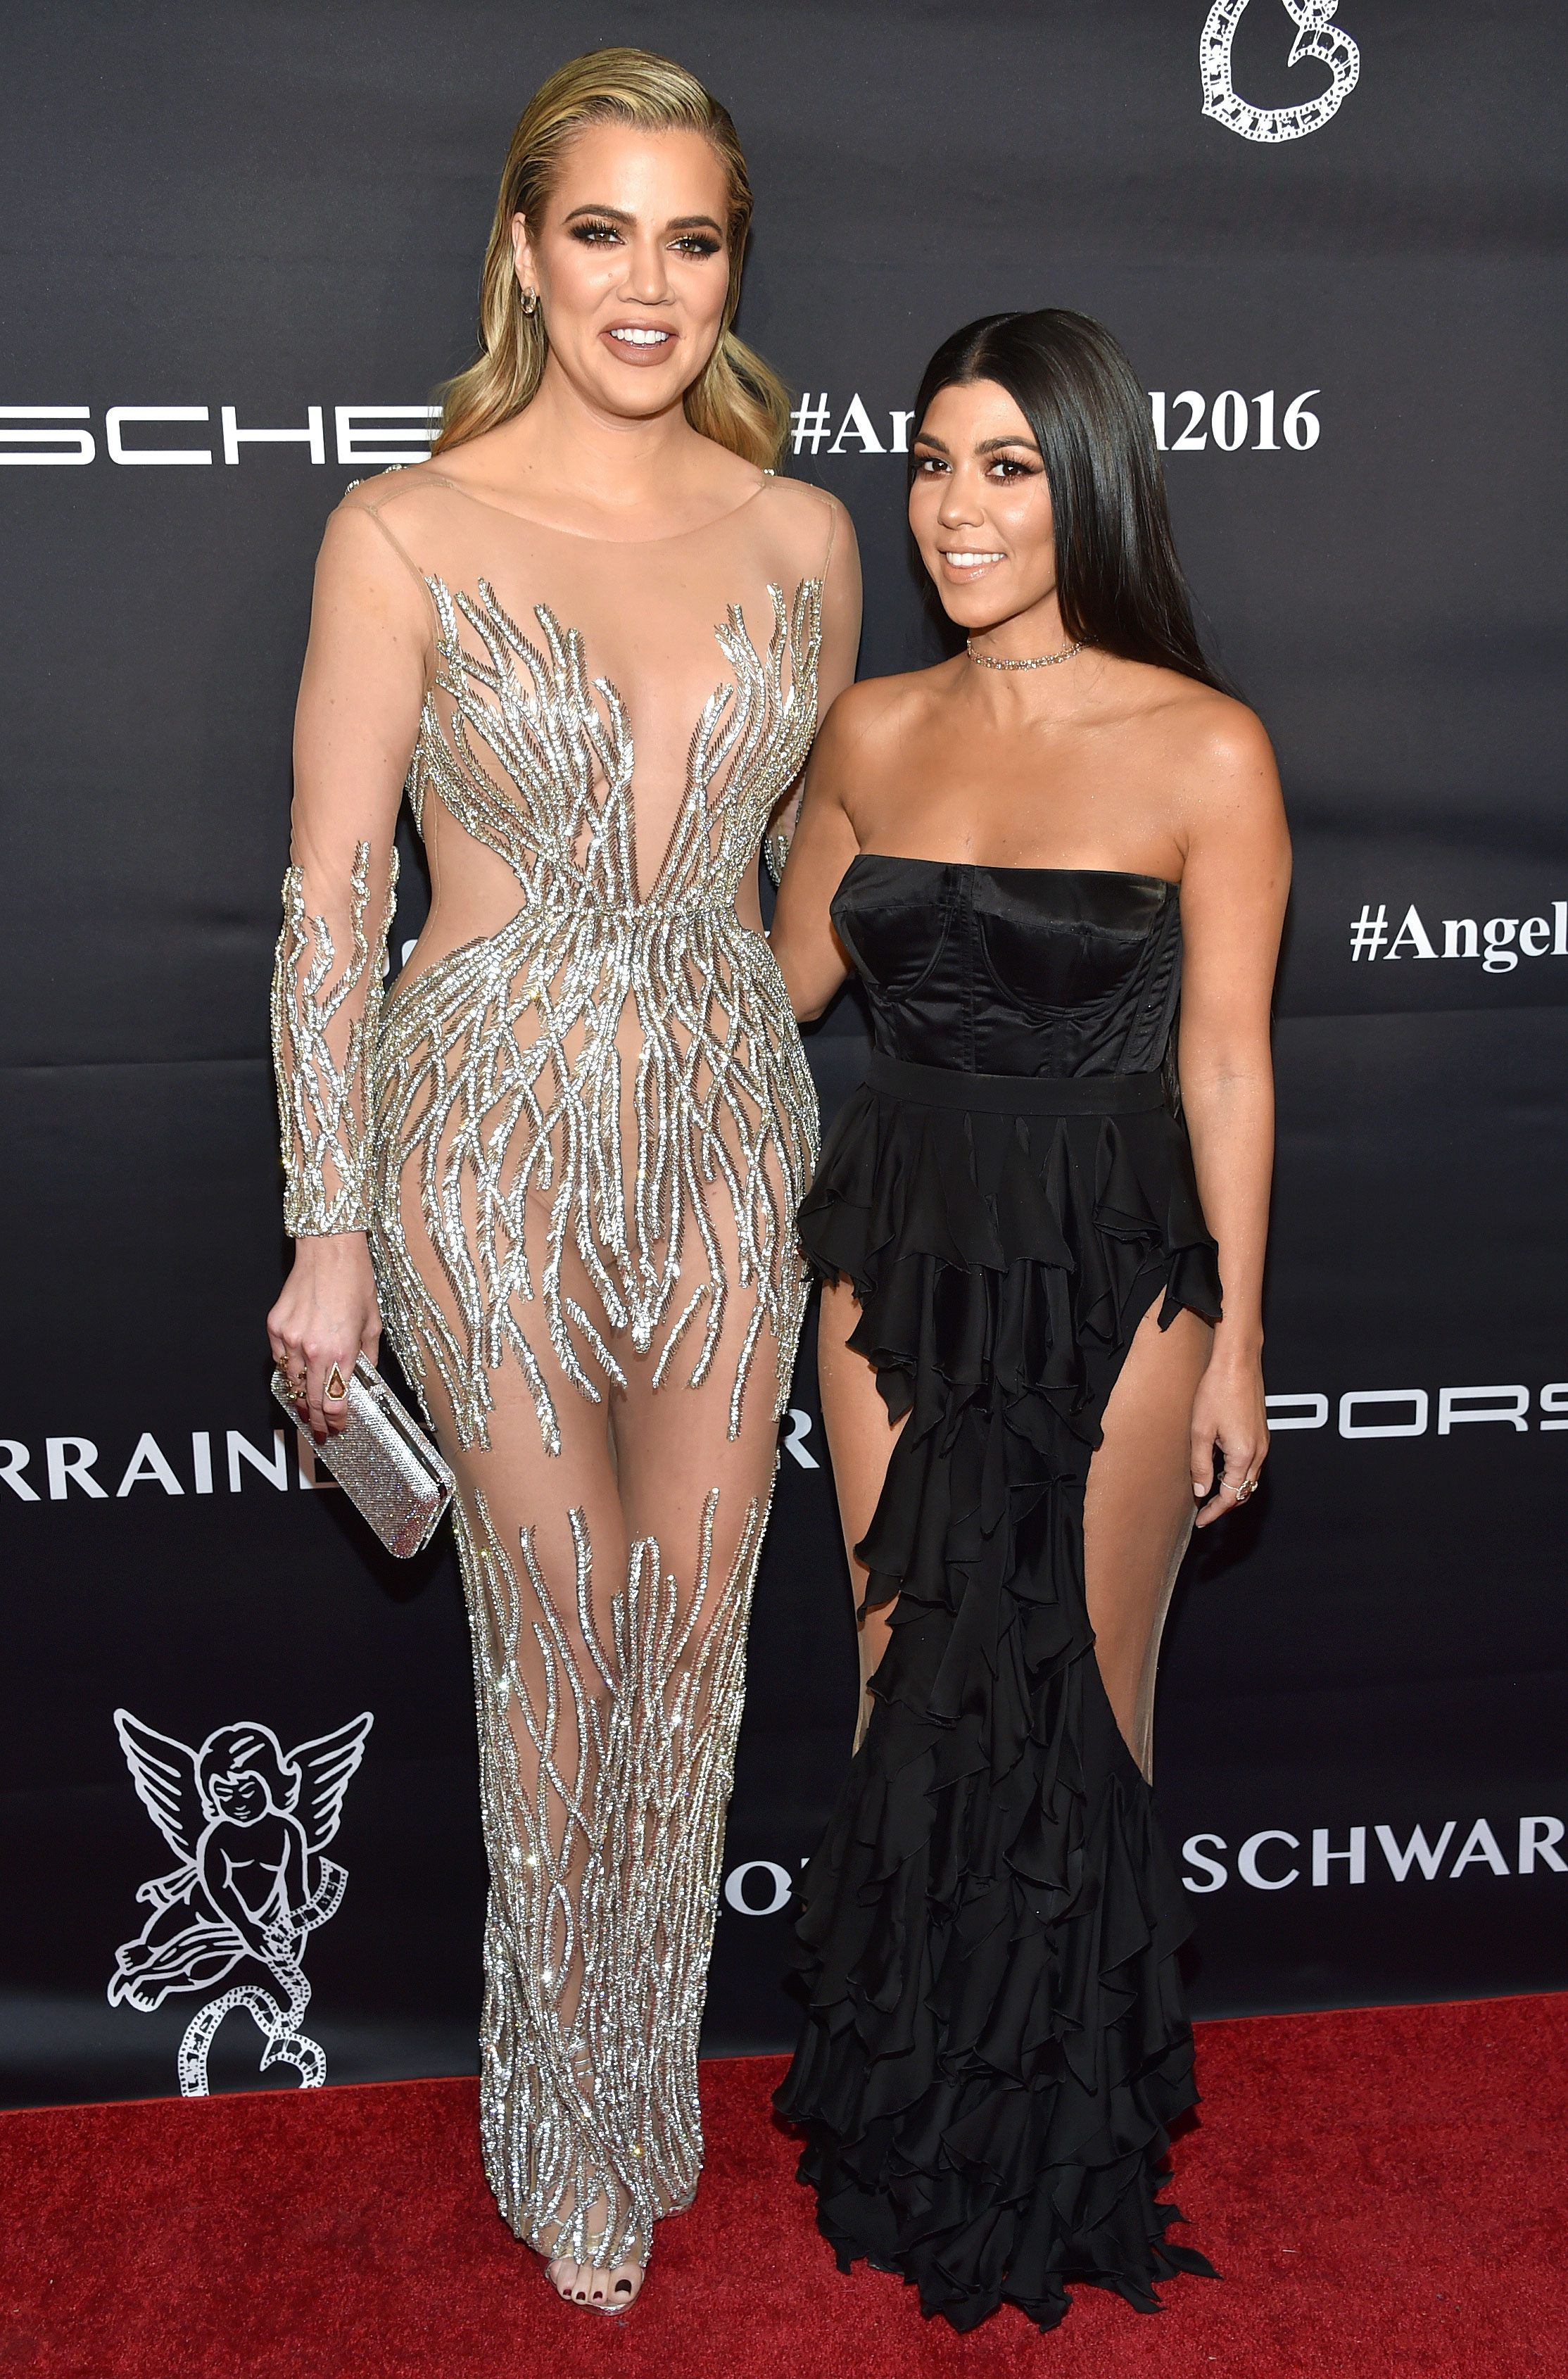 khloe 1 6cd2f8fb 75c4 4c84 8fec 01cbbdc57d0a Celebs Who Have Been Awful To Their Assistants